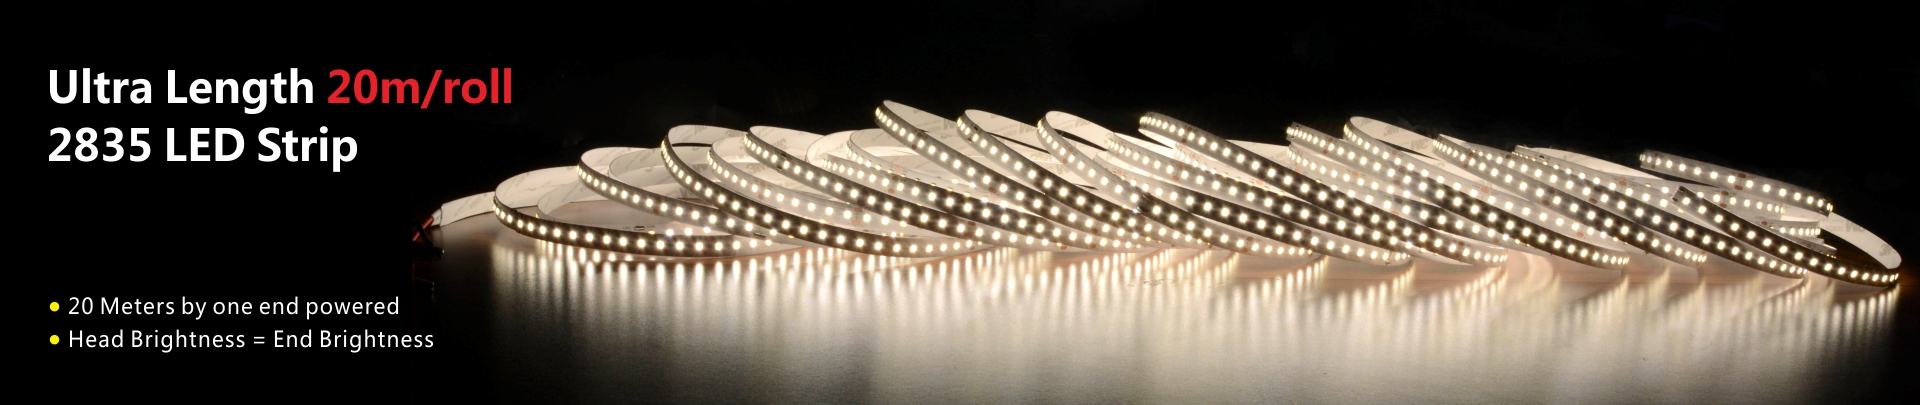 Ultra Length 20meters LED Strip